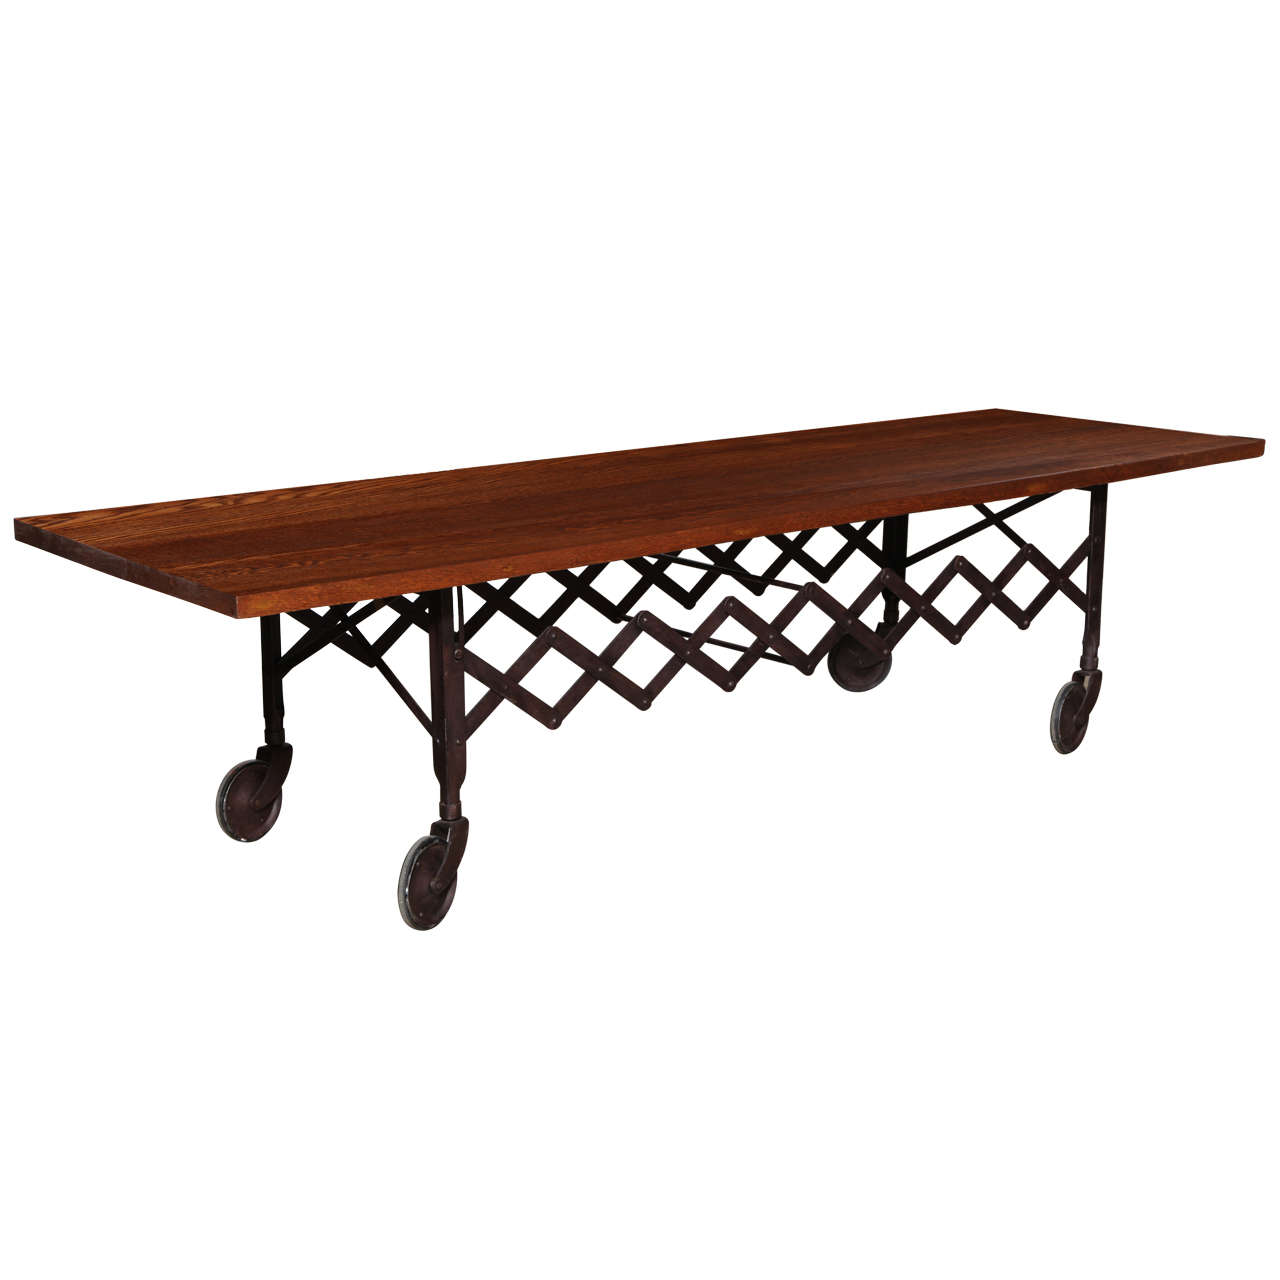 Large Rolling Industrial Folding Scissor Coffee Table With Dark Oak Top For Sale At 1stdibs